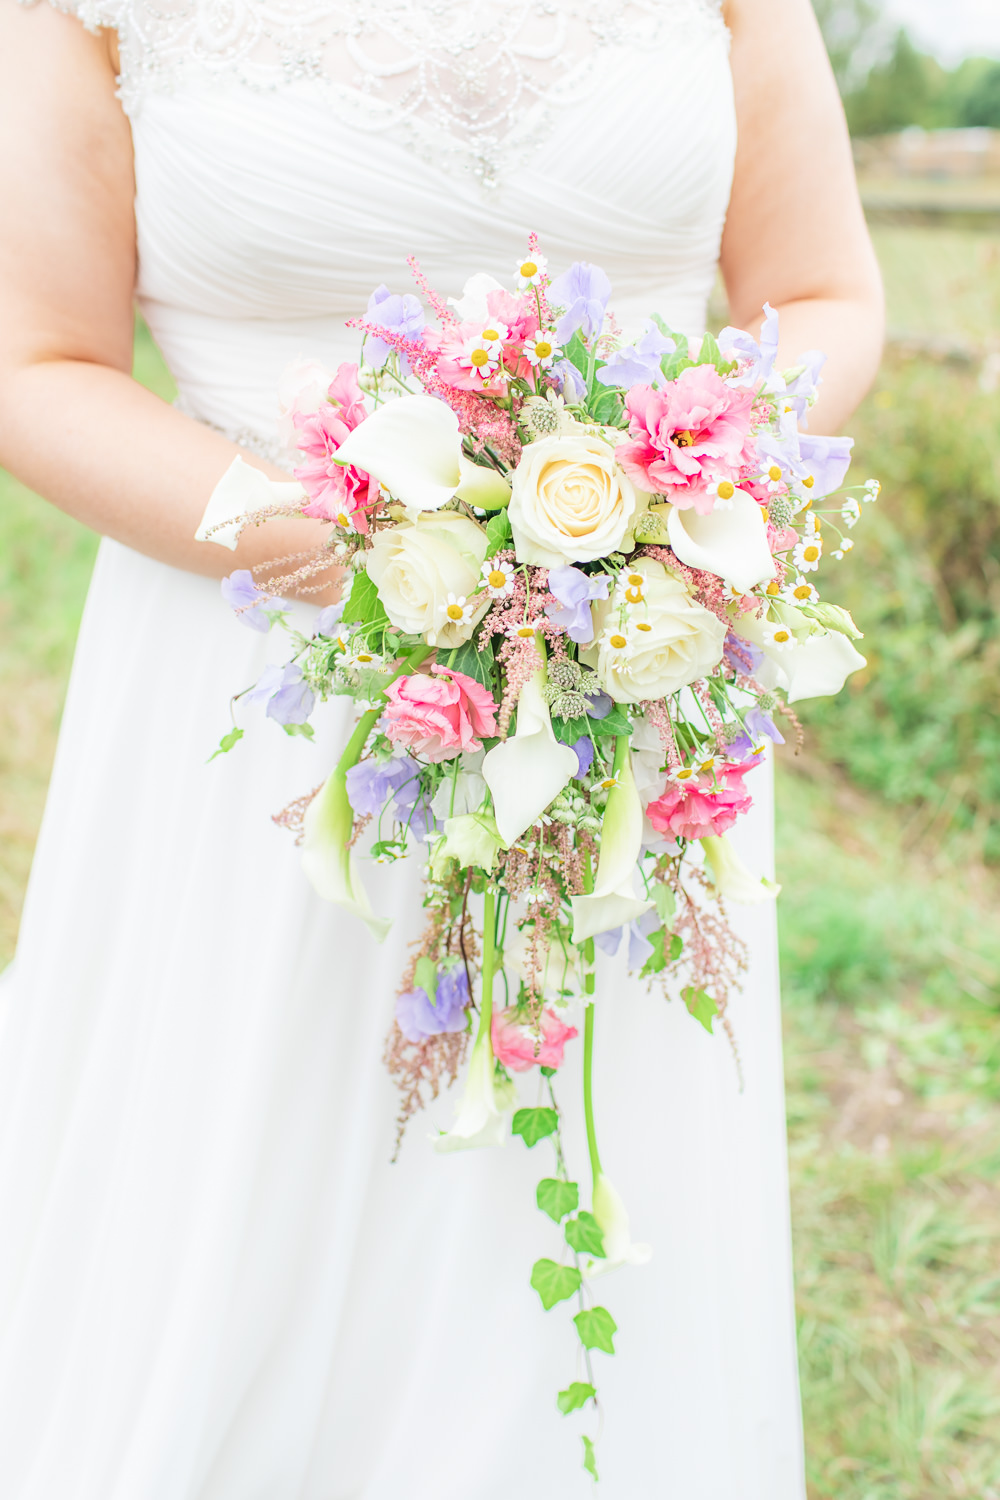 Bride Bridal Bouquet Daisy Cascading Waterfall Rose Bedfordshire Tipi Wedding Natalie Stevenson Photography